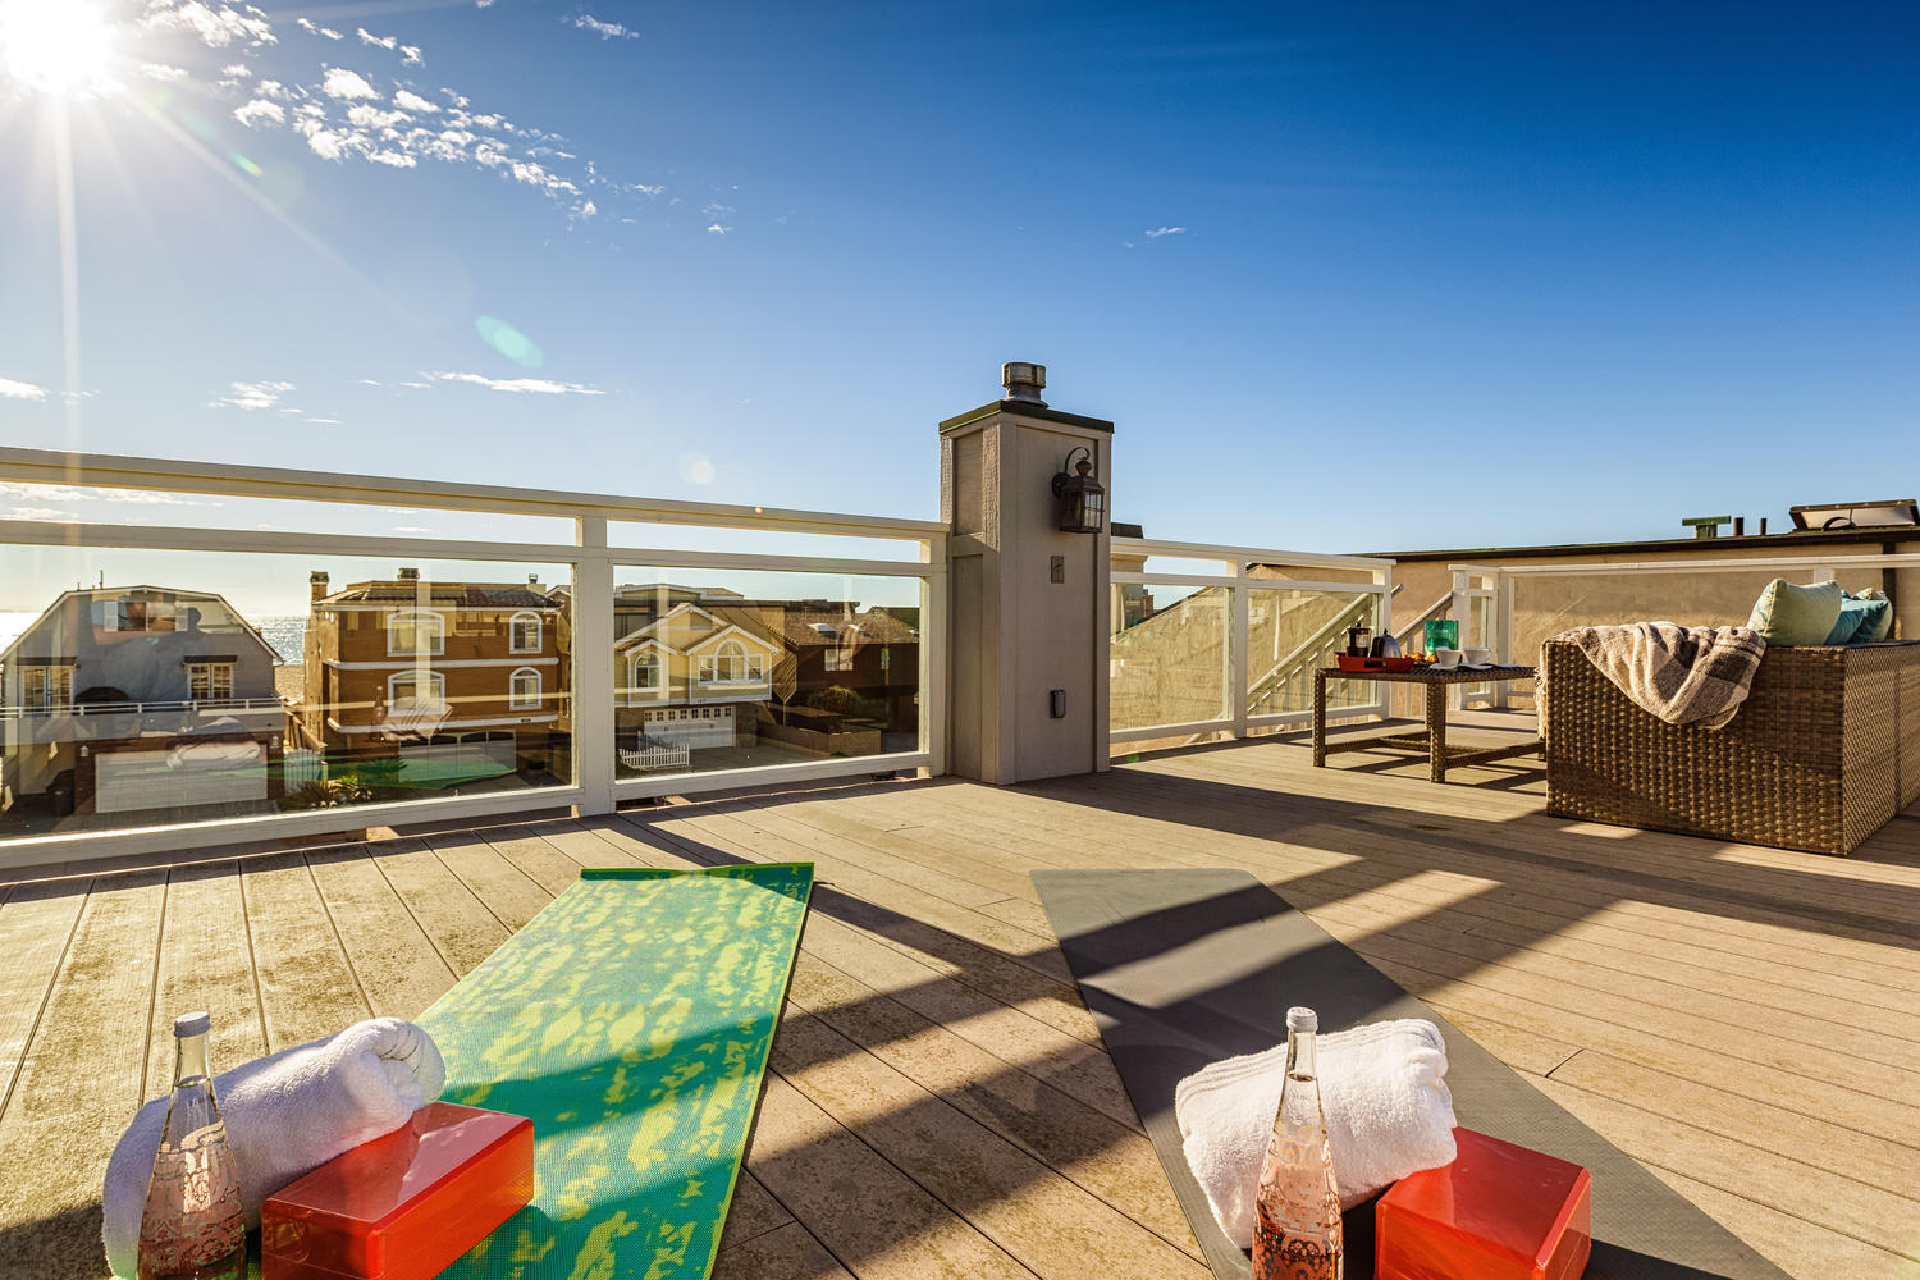 https://addressrealestate.com/media/images/blogs/38/2/b_22-1408-ocean-dr-oxnard-ca-93035-mls-size-022-16-rooftop-patio-1500x1000-72dpi.jpg